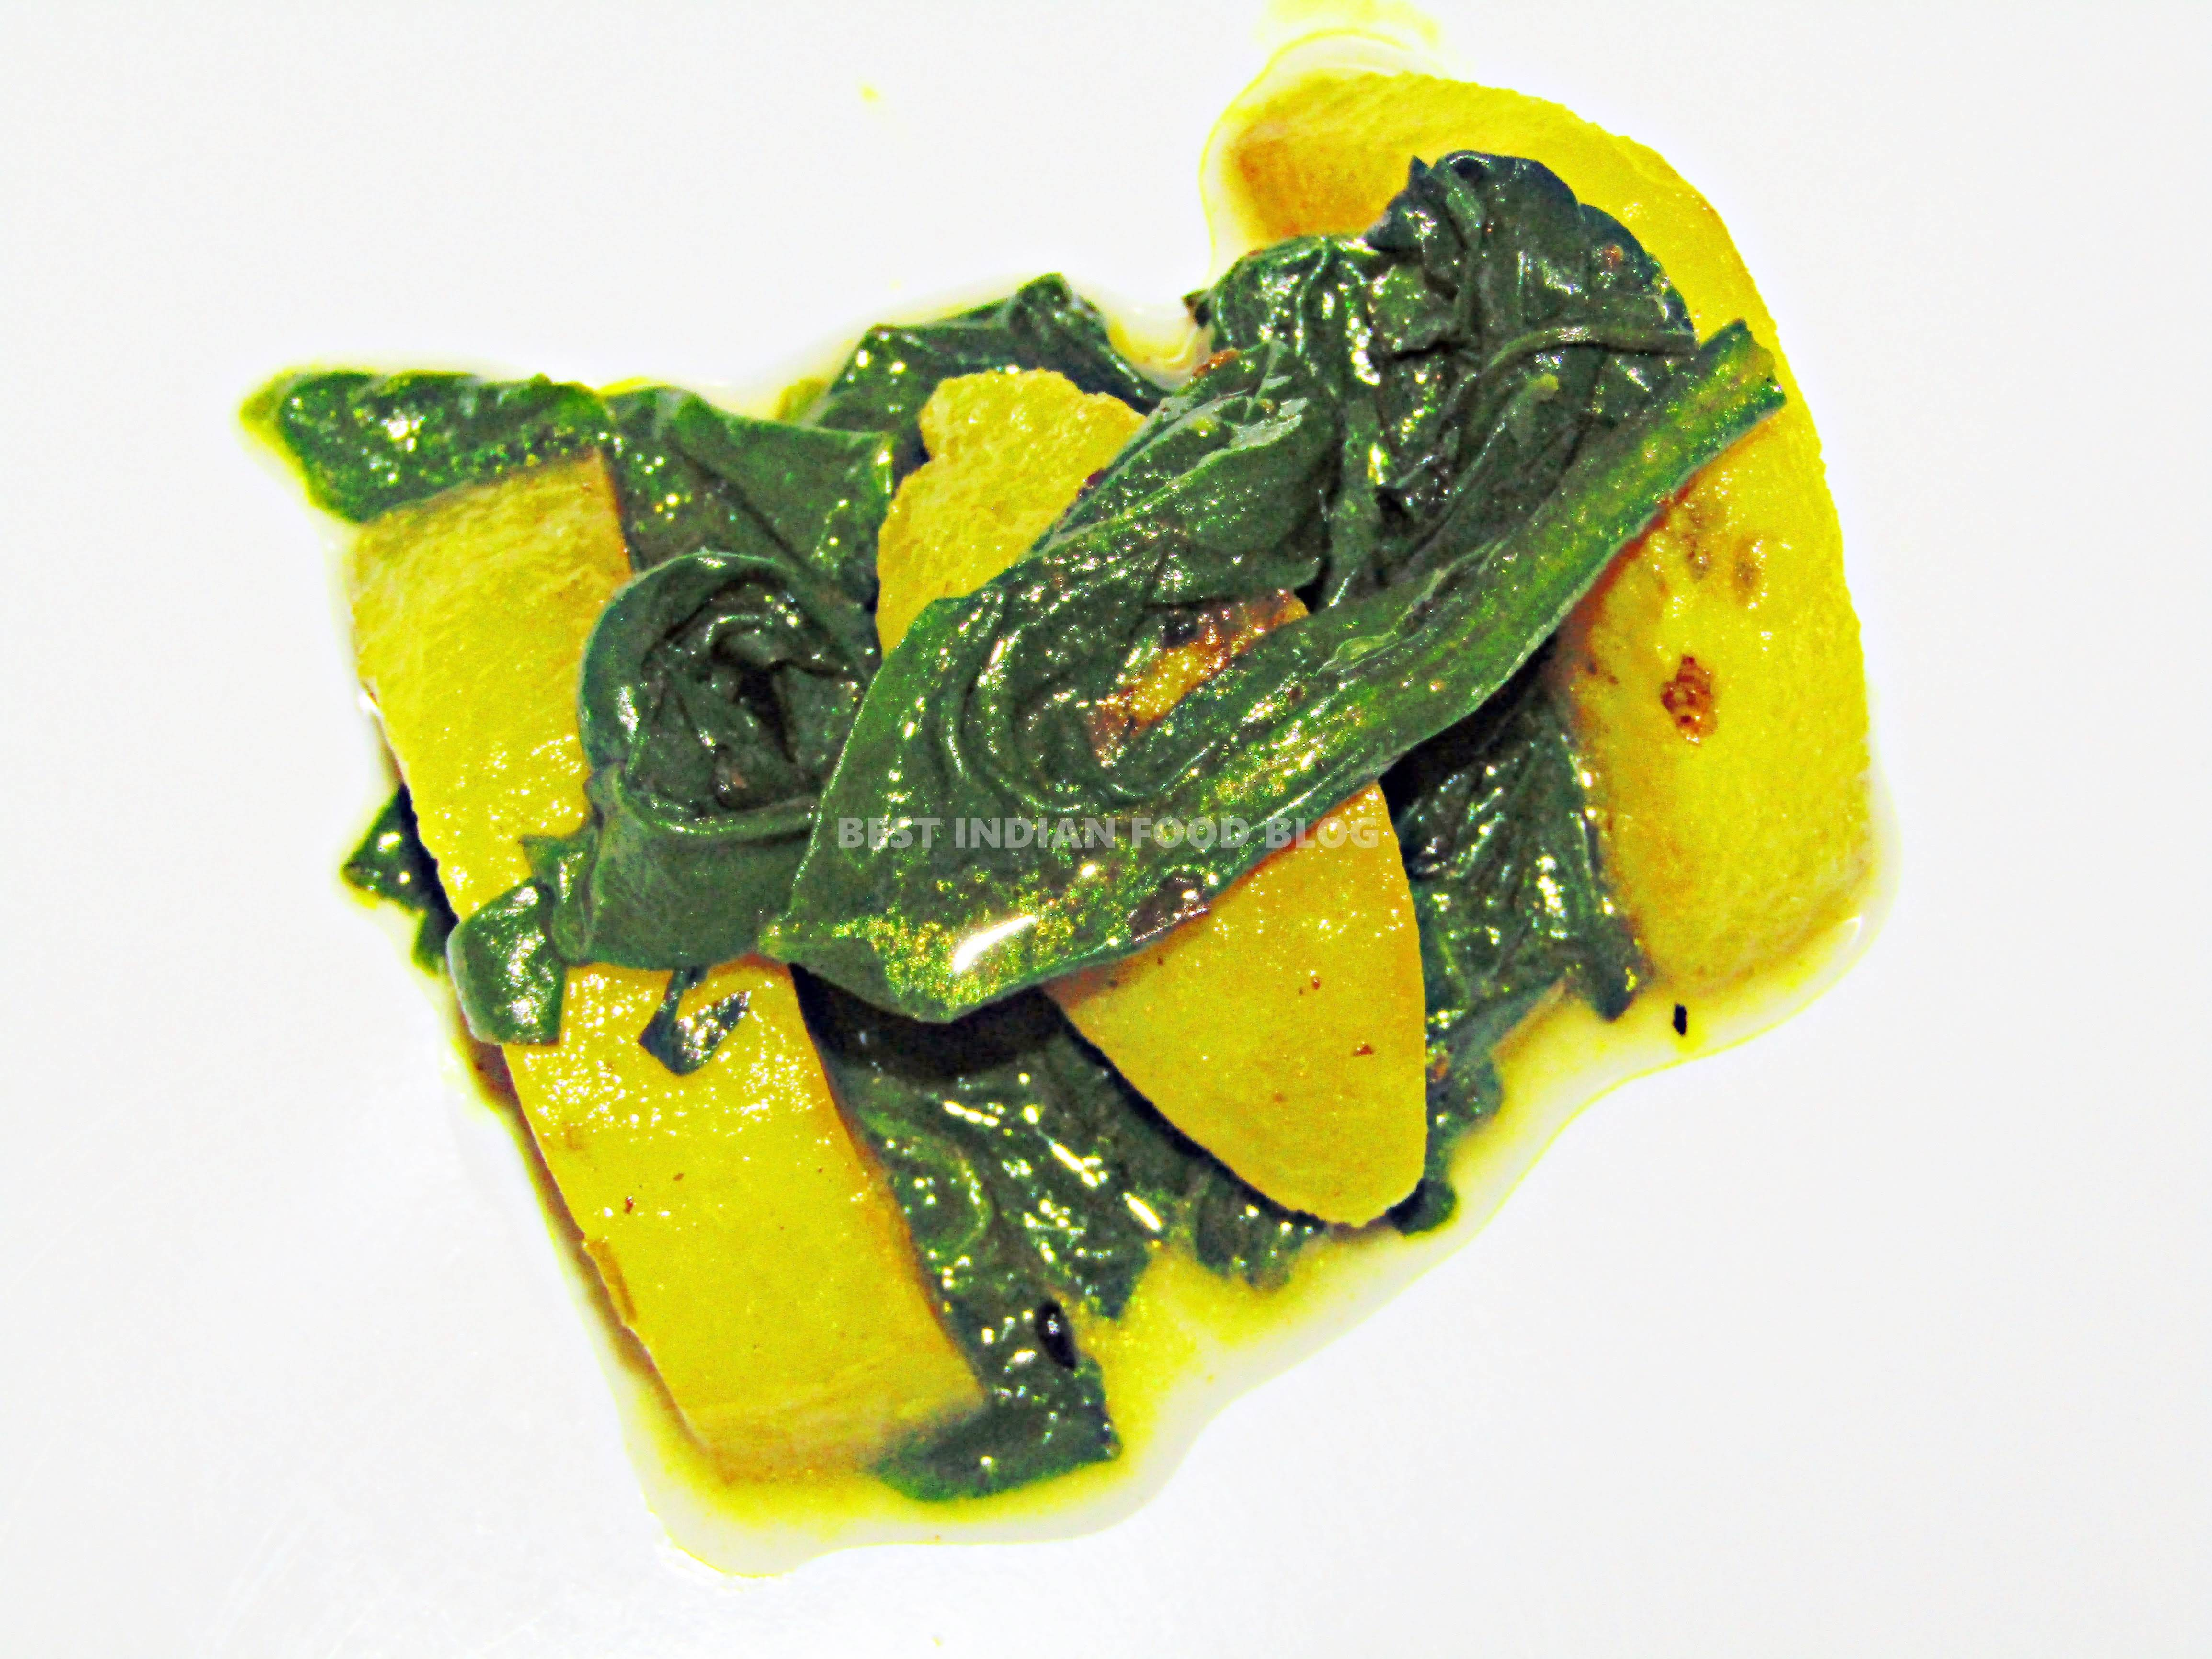 Palong Alu from West Bengal, India | Best Indian Food Blog | Spinach Potato recipe